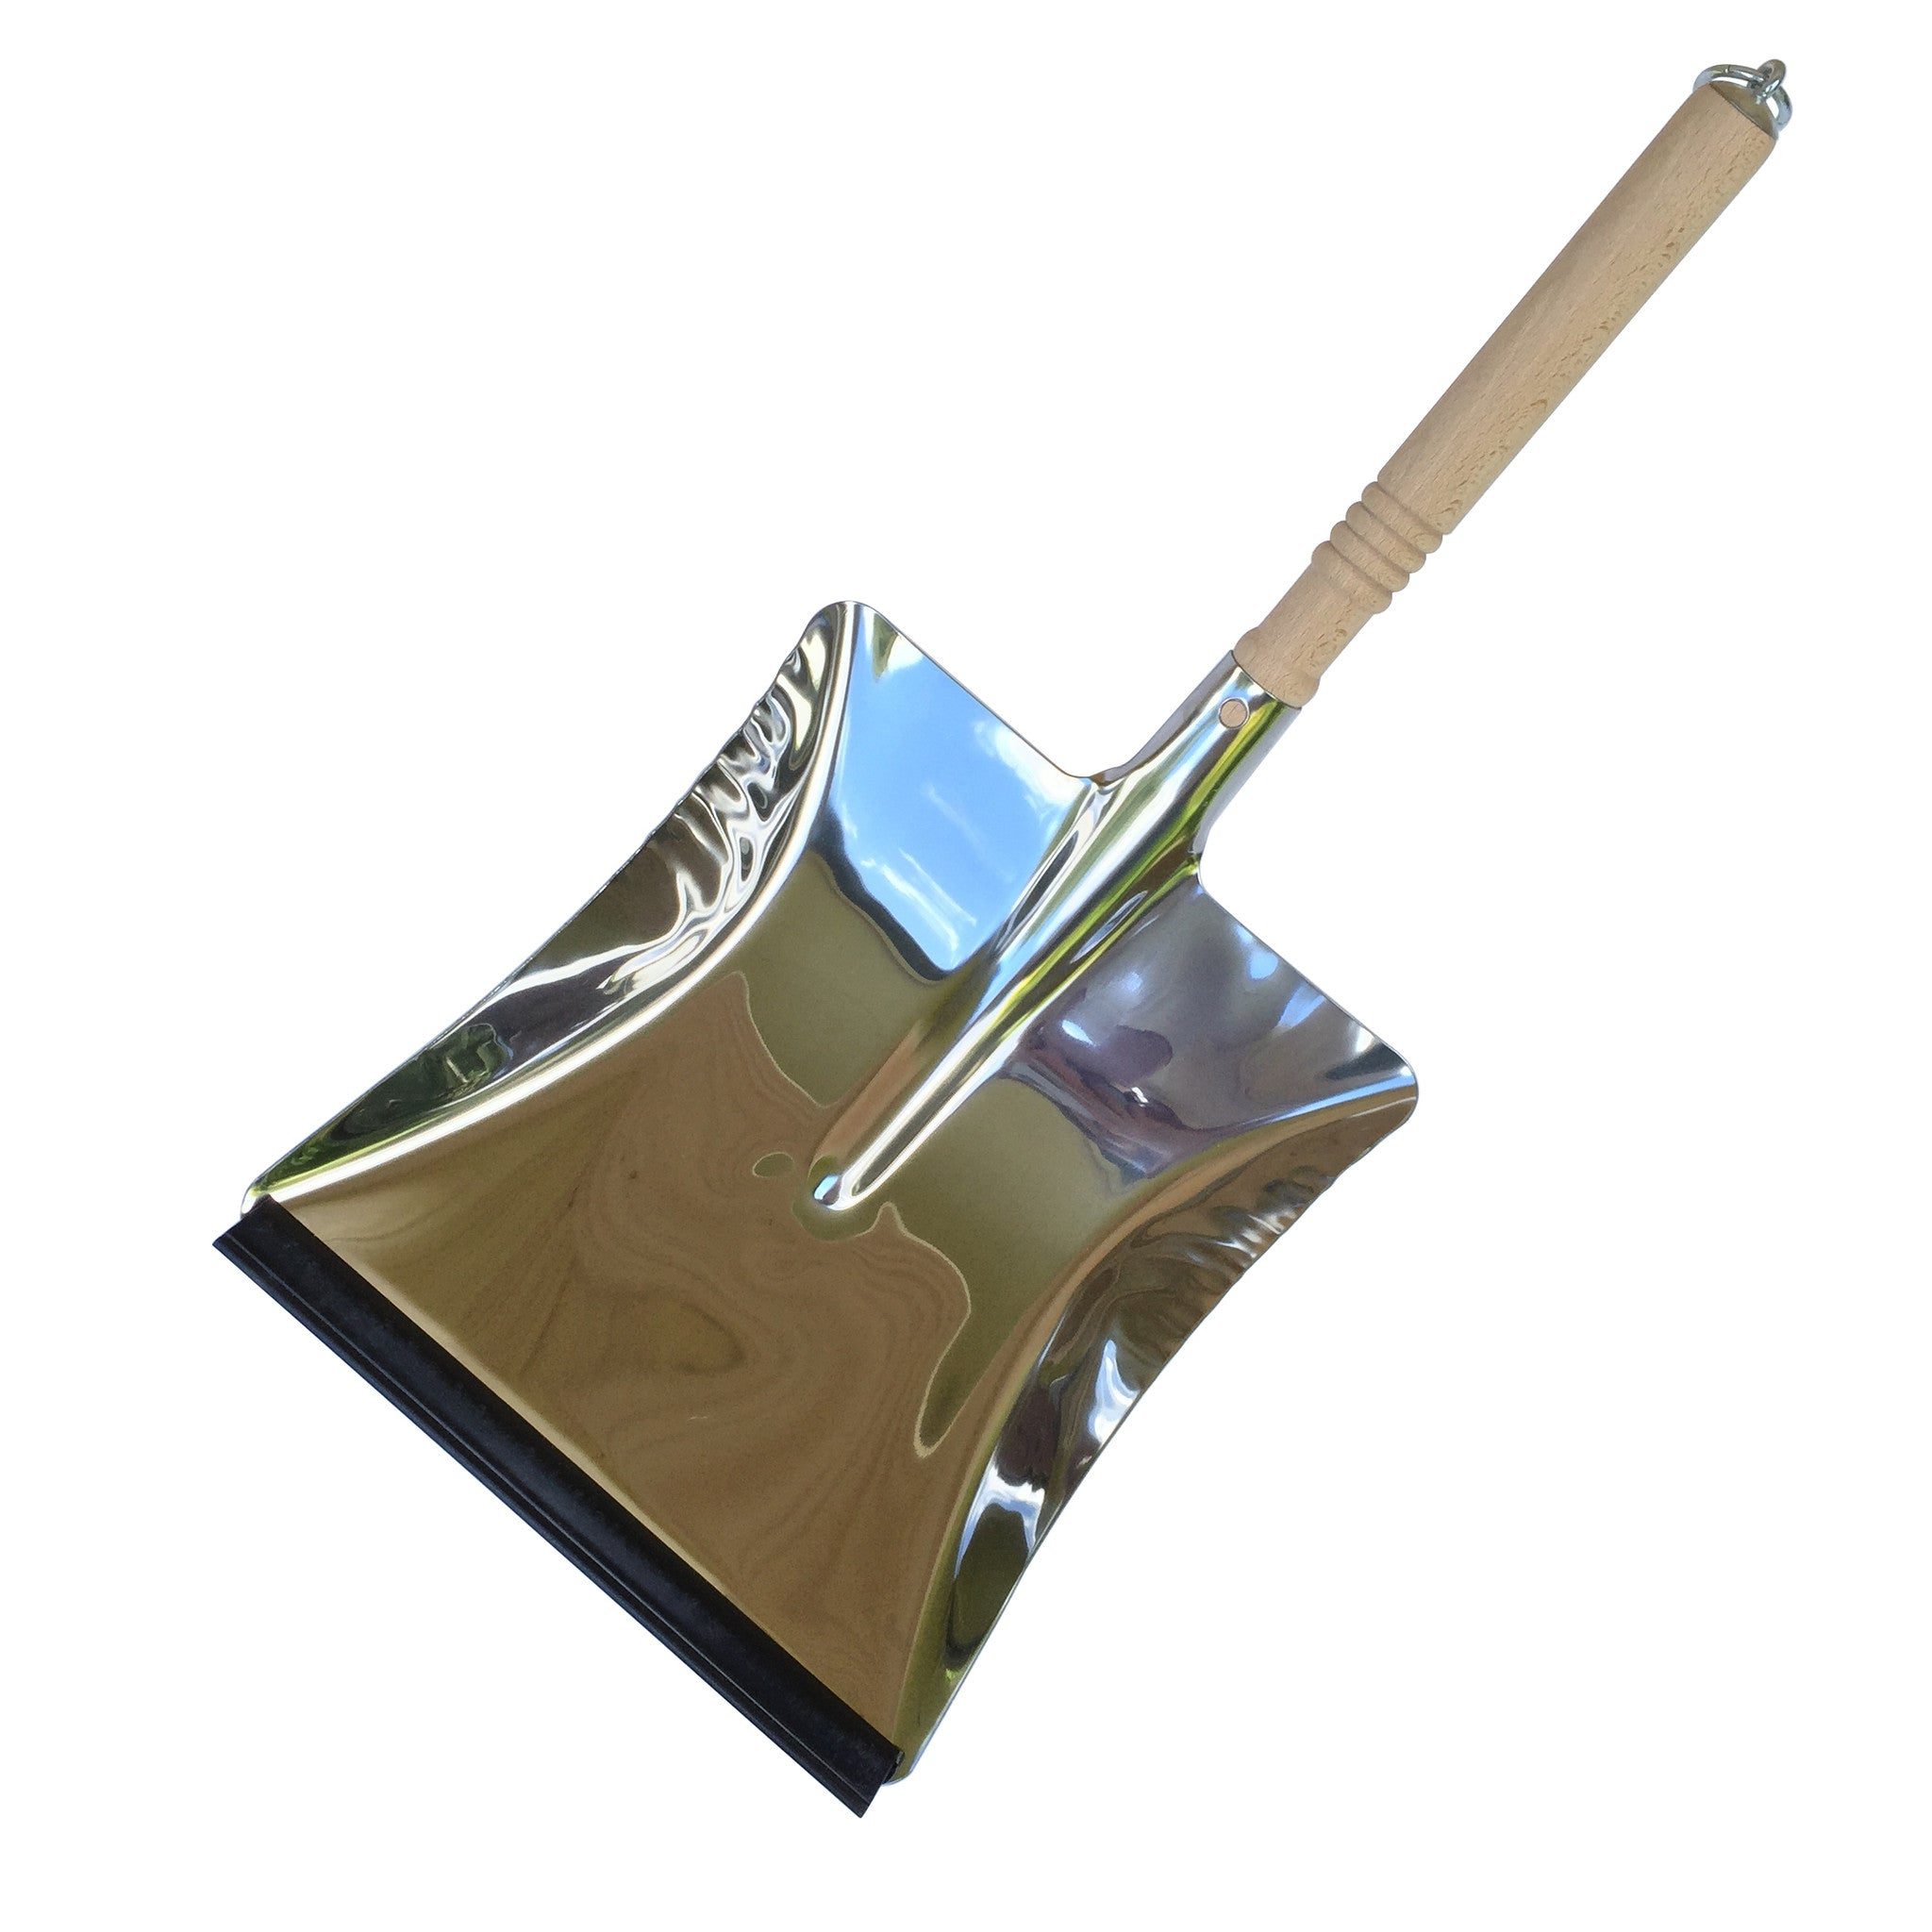 Dust Pan - Stainless Steel - The Potting Shed Garden Tools